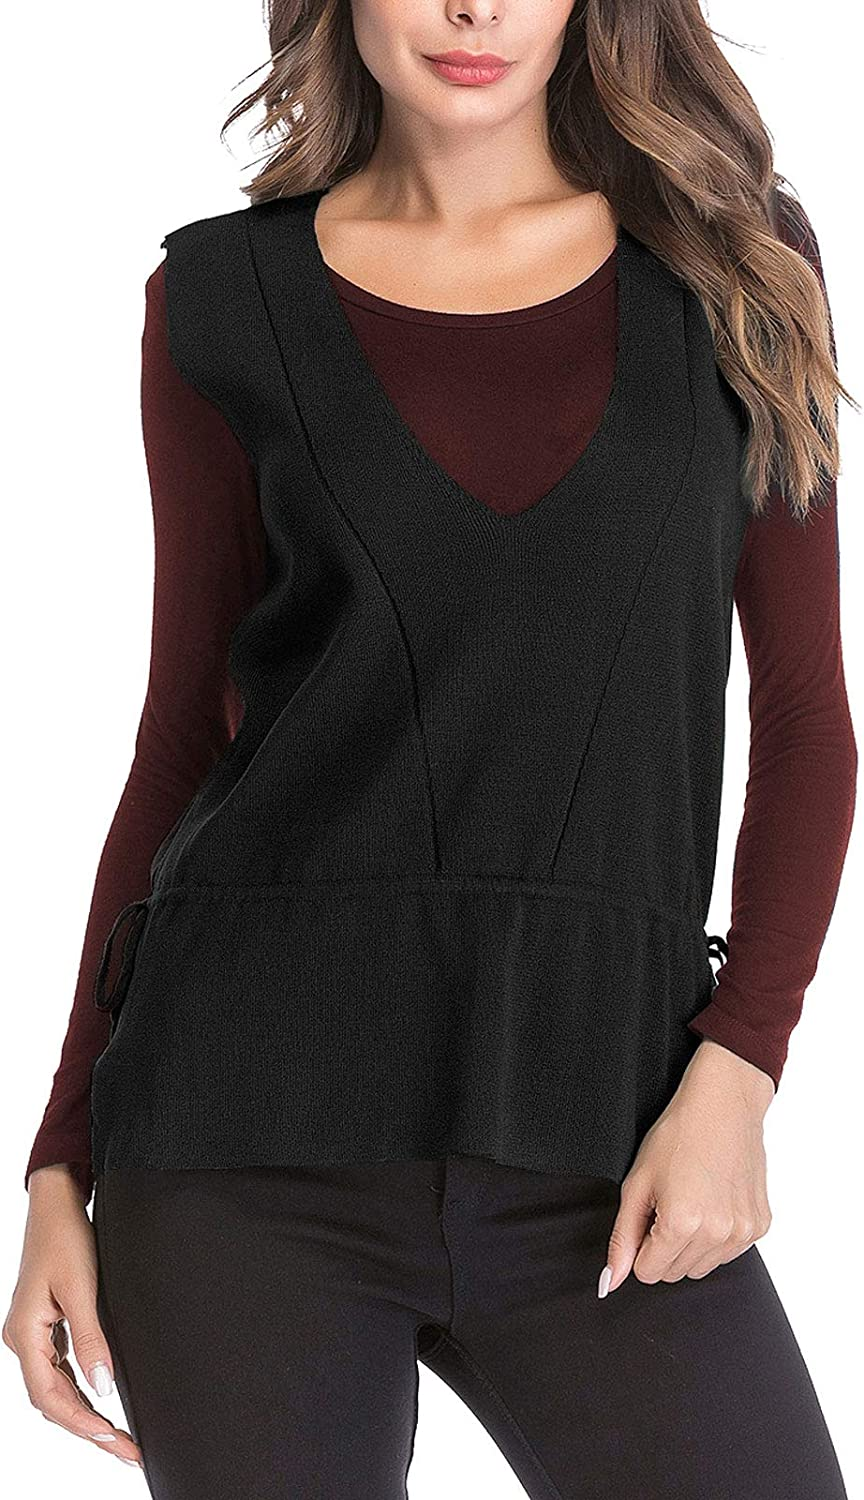 Flygo Women's Brand Cheap Sale Venue Casual V Neck Sleeveless Tops San Antonio Mall Knitted Vest Sweater